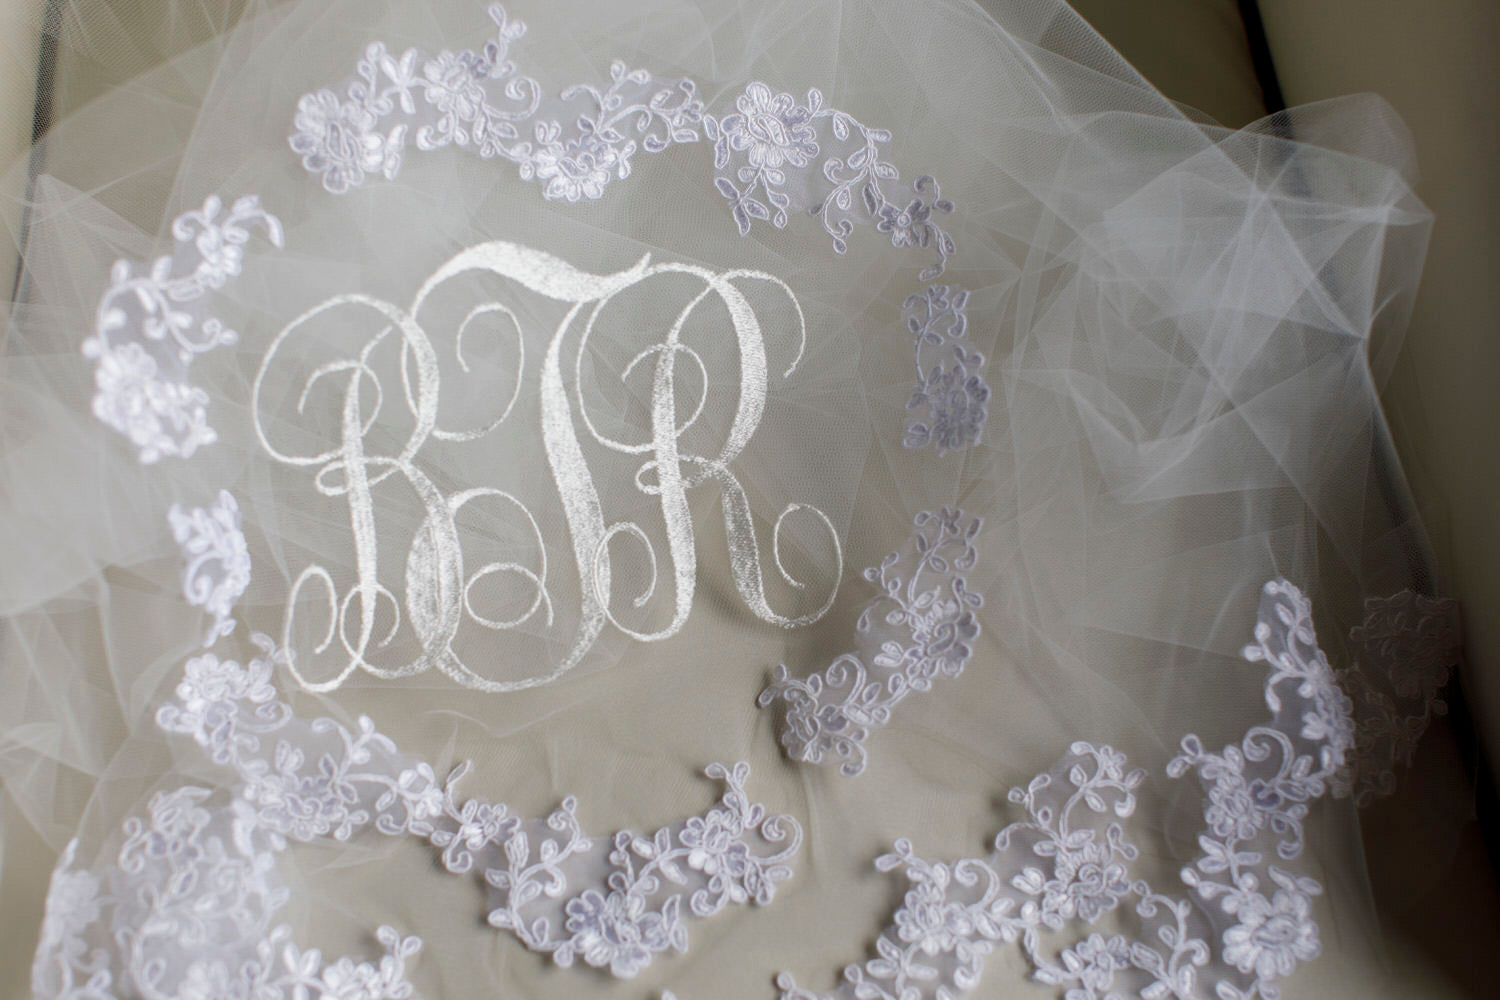 lace applique and monogrammed embroidered veil in off white